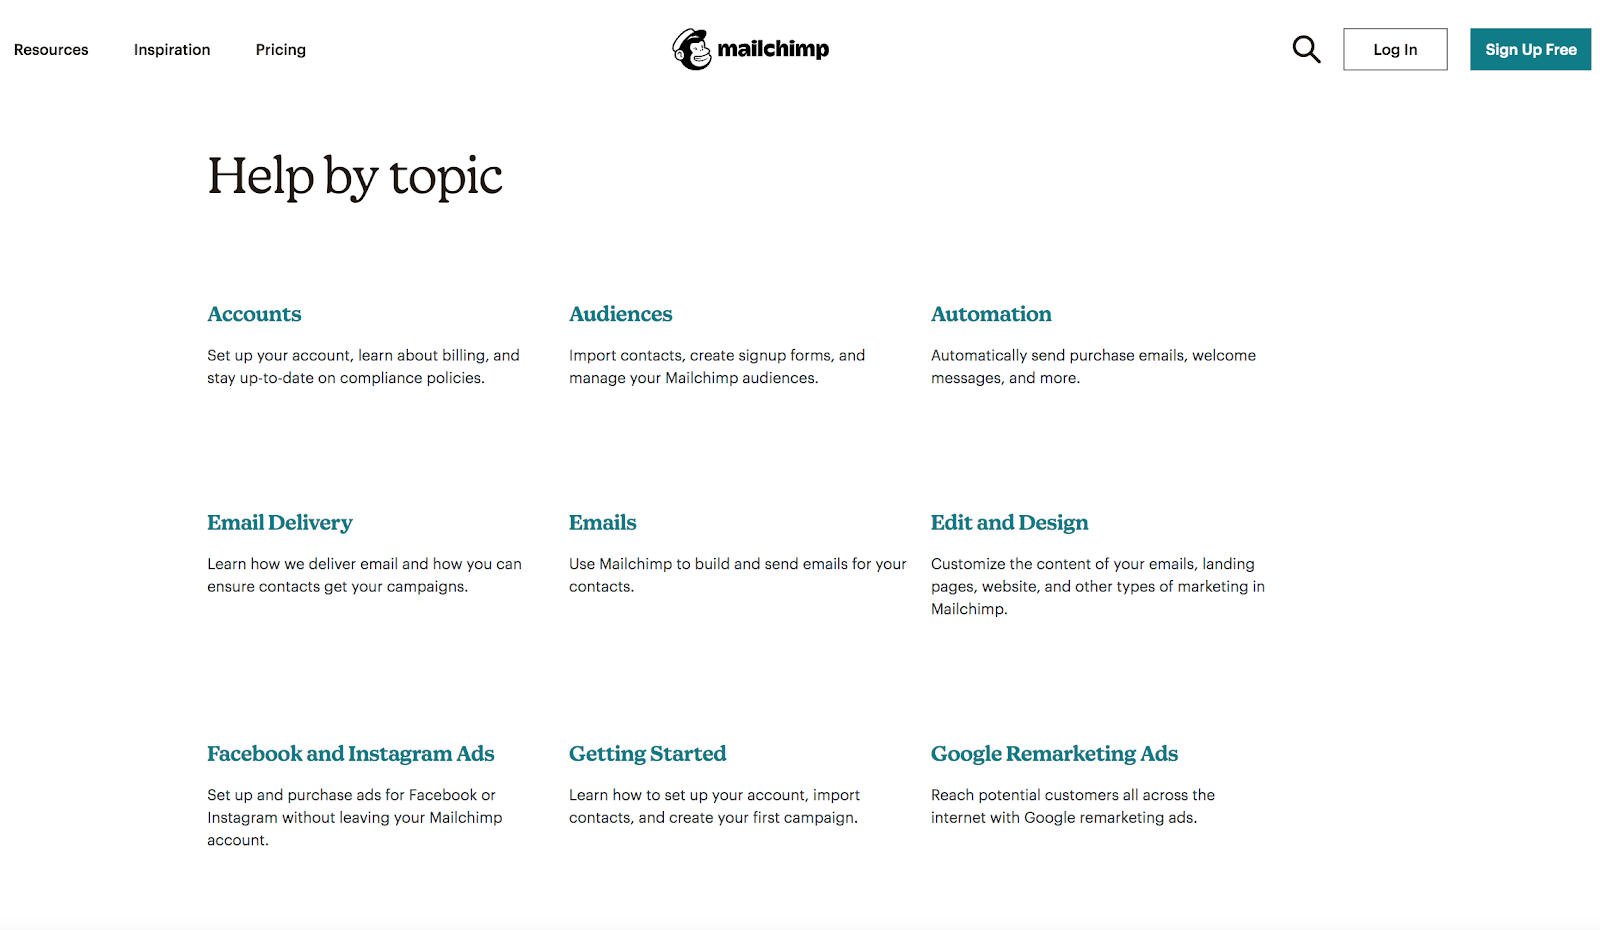 Knowledge library for mailchimp